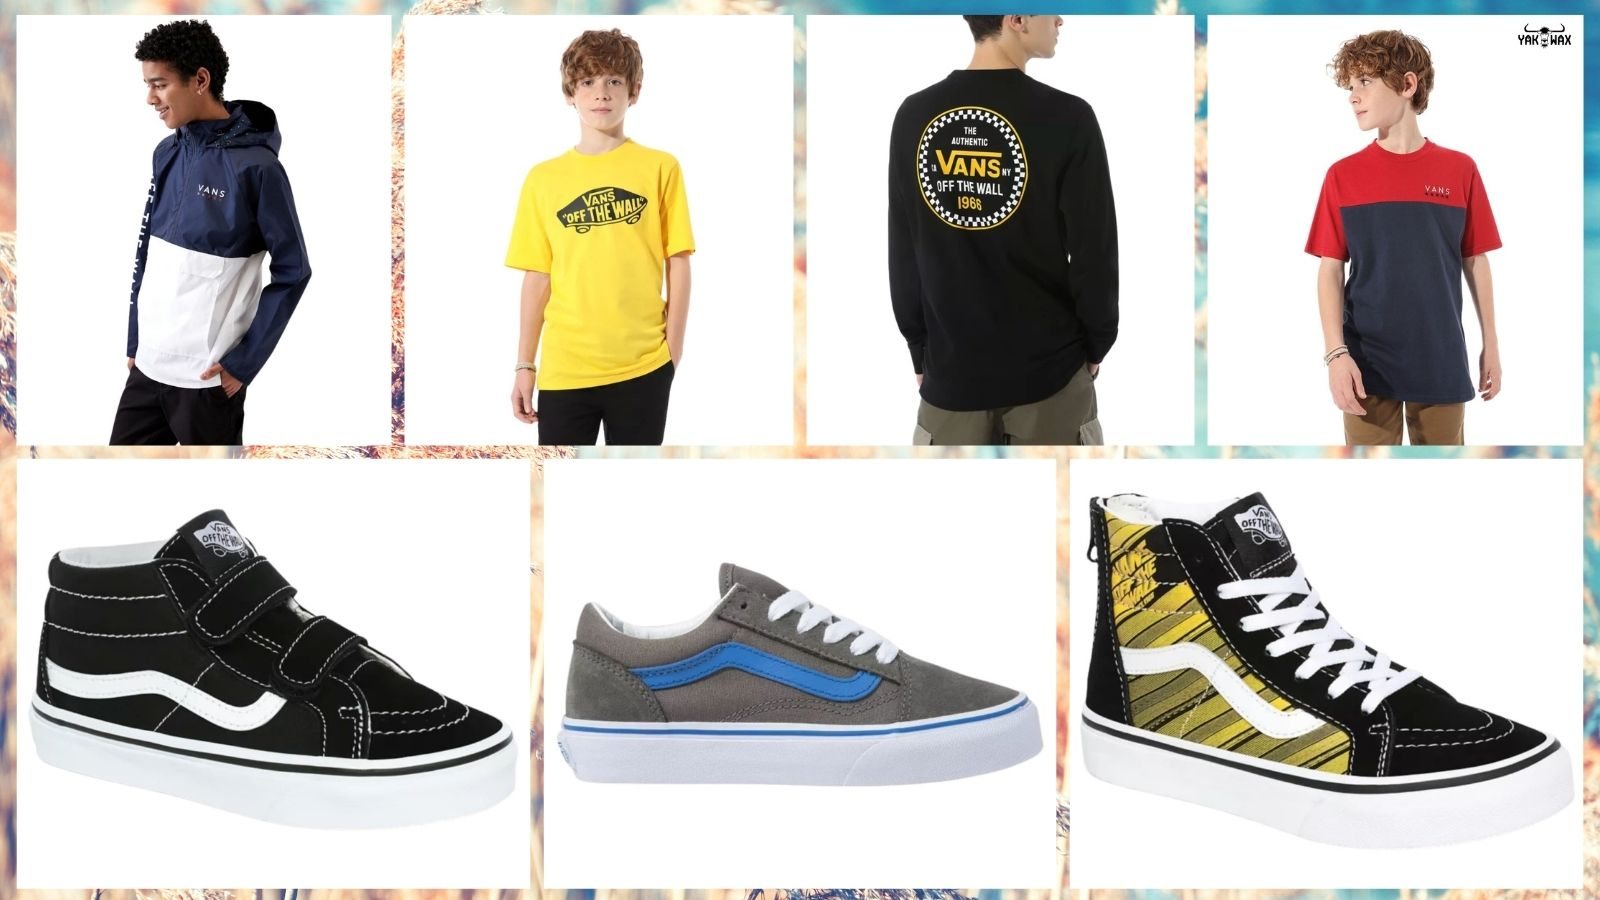 Vans-Shoes-Clothing-Fall-2020